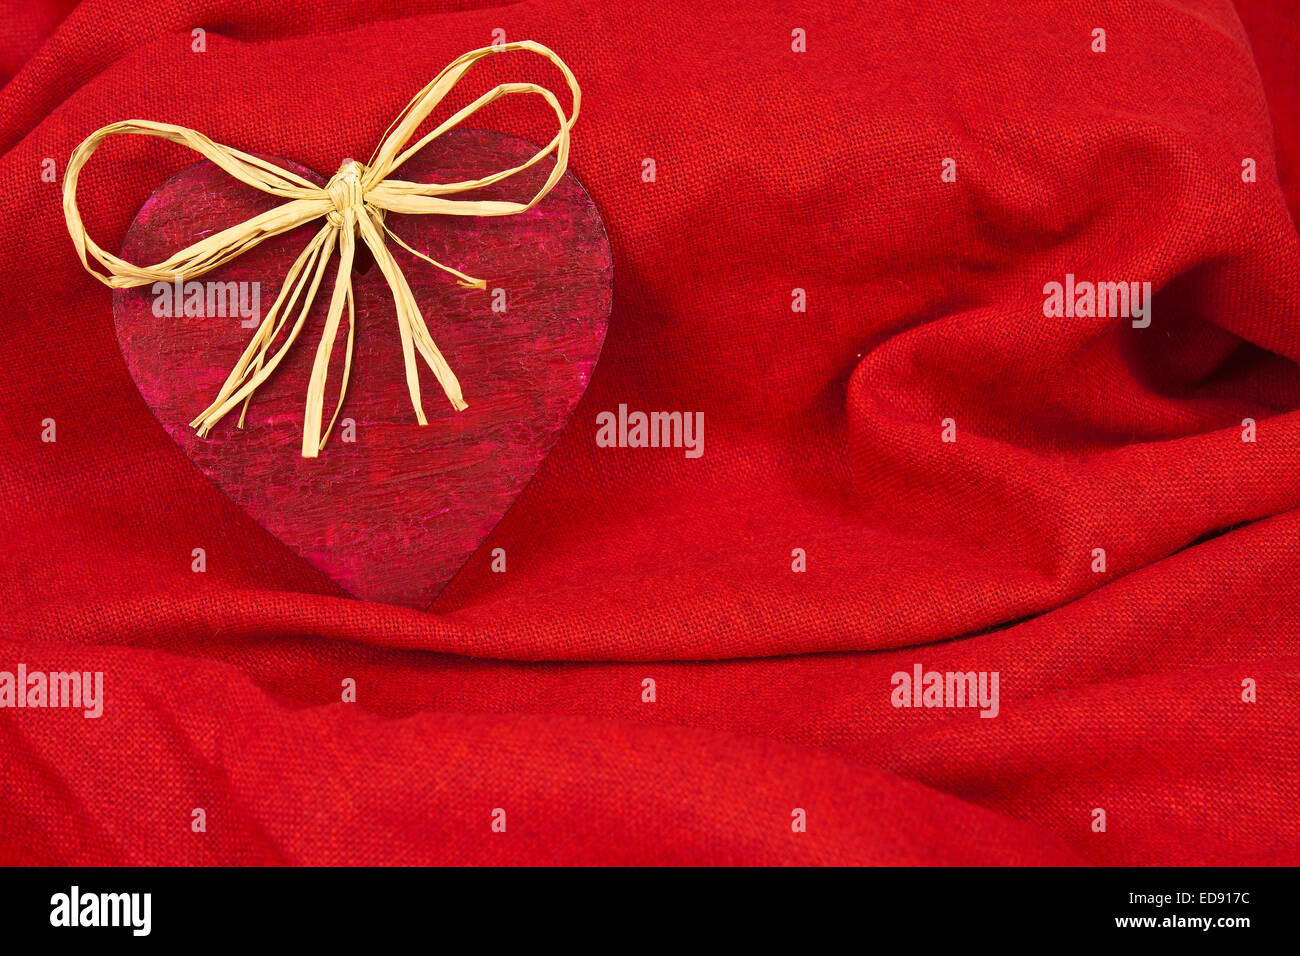 Wooden red heart on red cloth as a symbol of love stock photo wooden red heart on red cloth as a symbol of love biocorpaavc Images